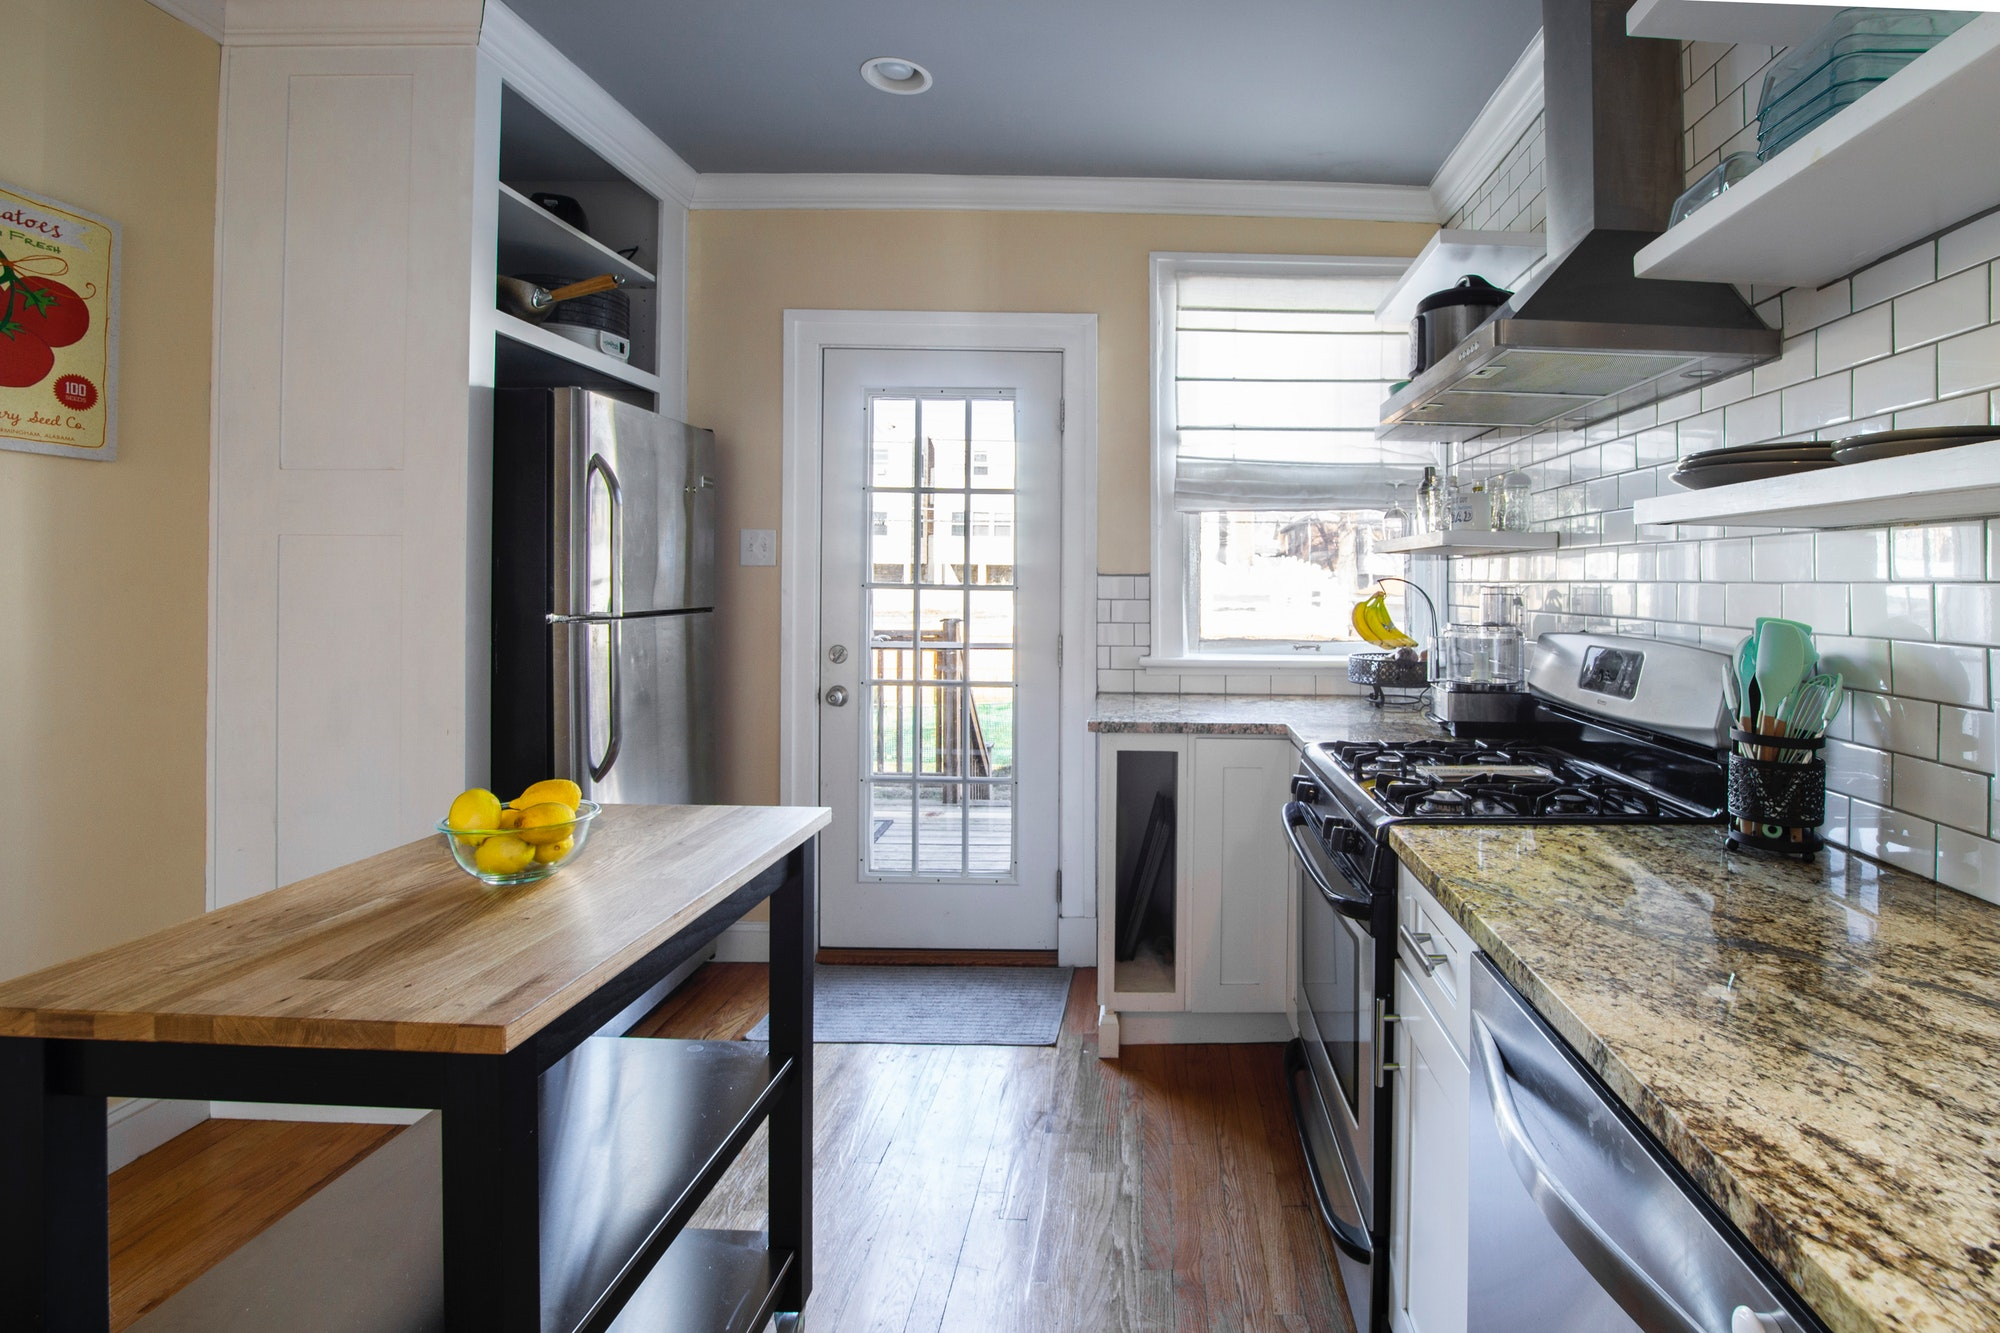 Appliance Repair Services In Northern New Jersey Master